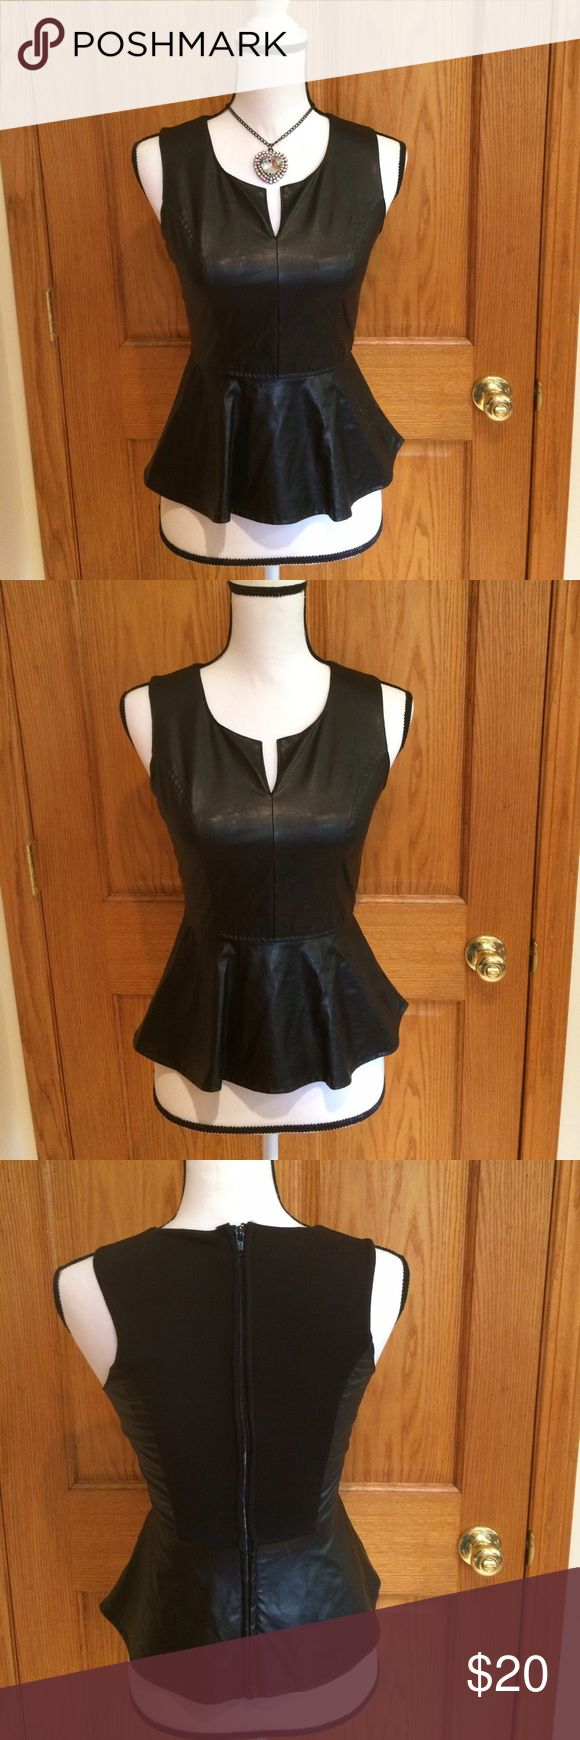 "Charlotte Russe Peplum Top Black faux leather peplum top. Full zipper in back. Measurements approximately as follows: bust 30"" and length is 21"". Charlotte Russe Tops Blouses"